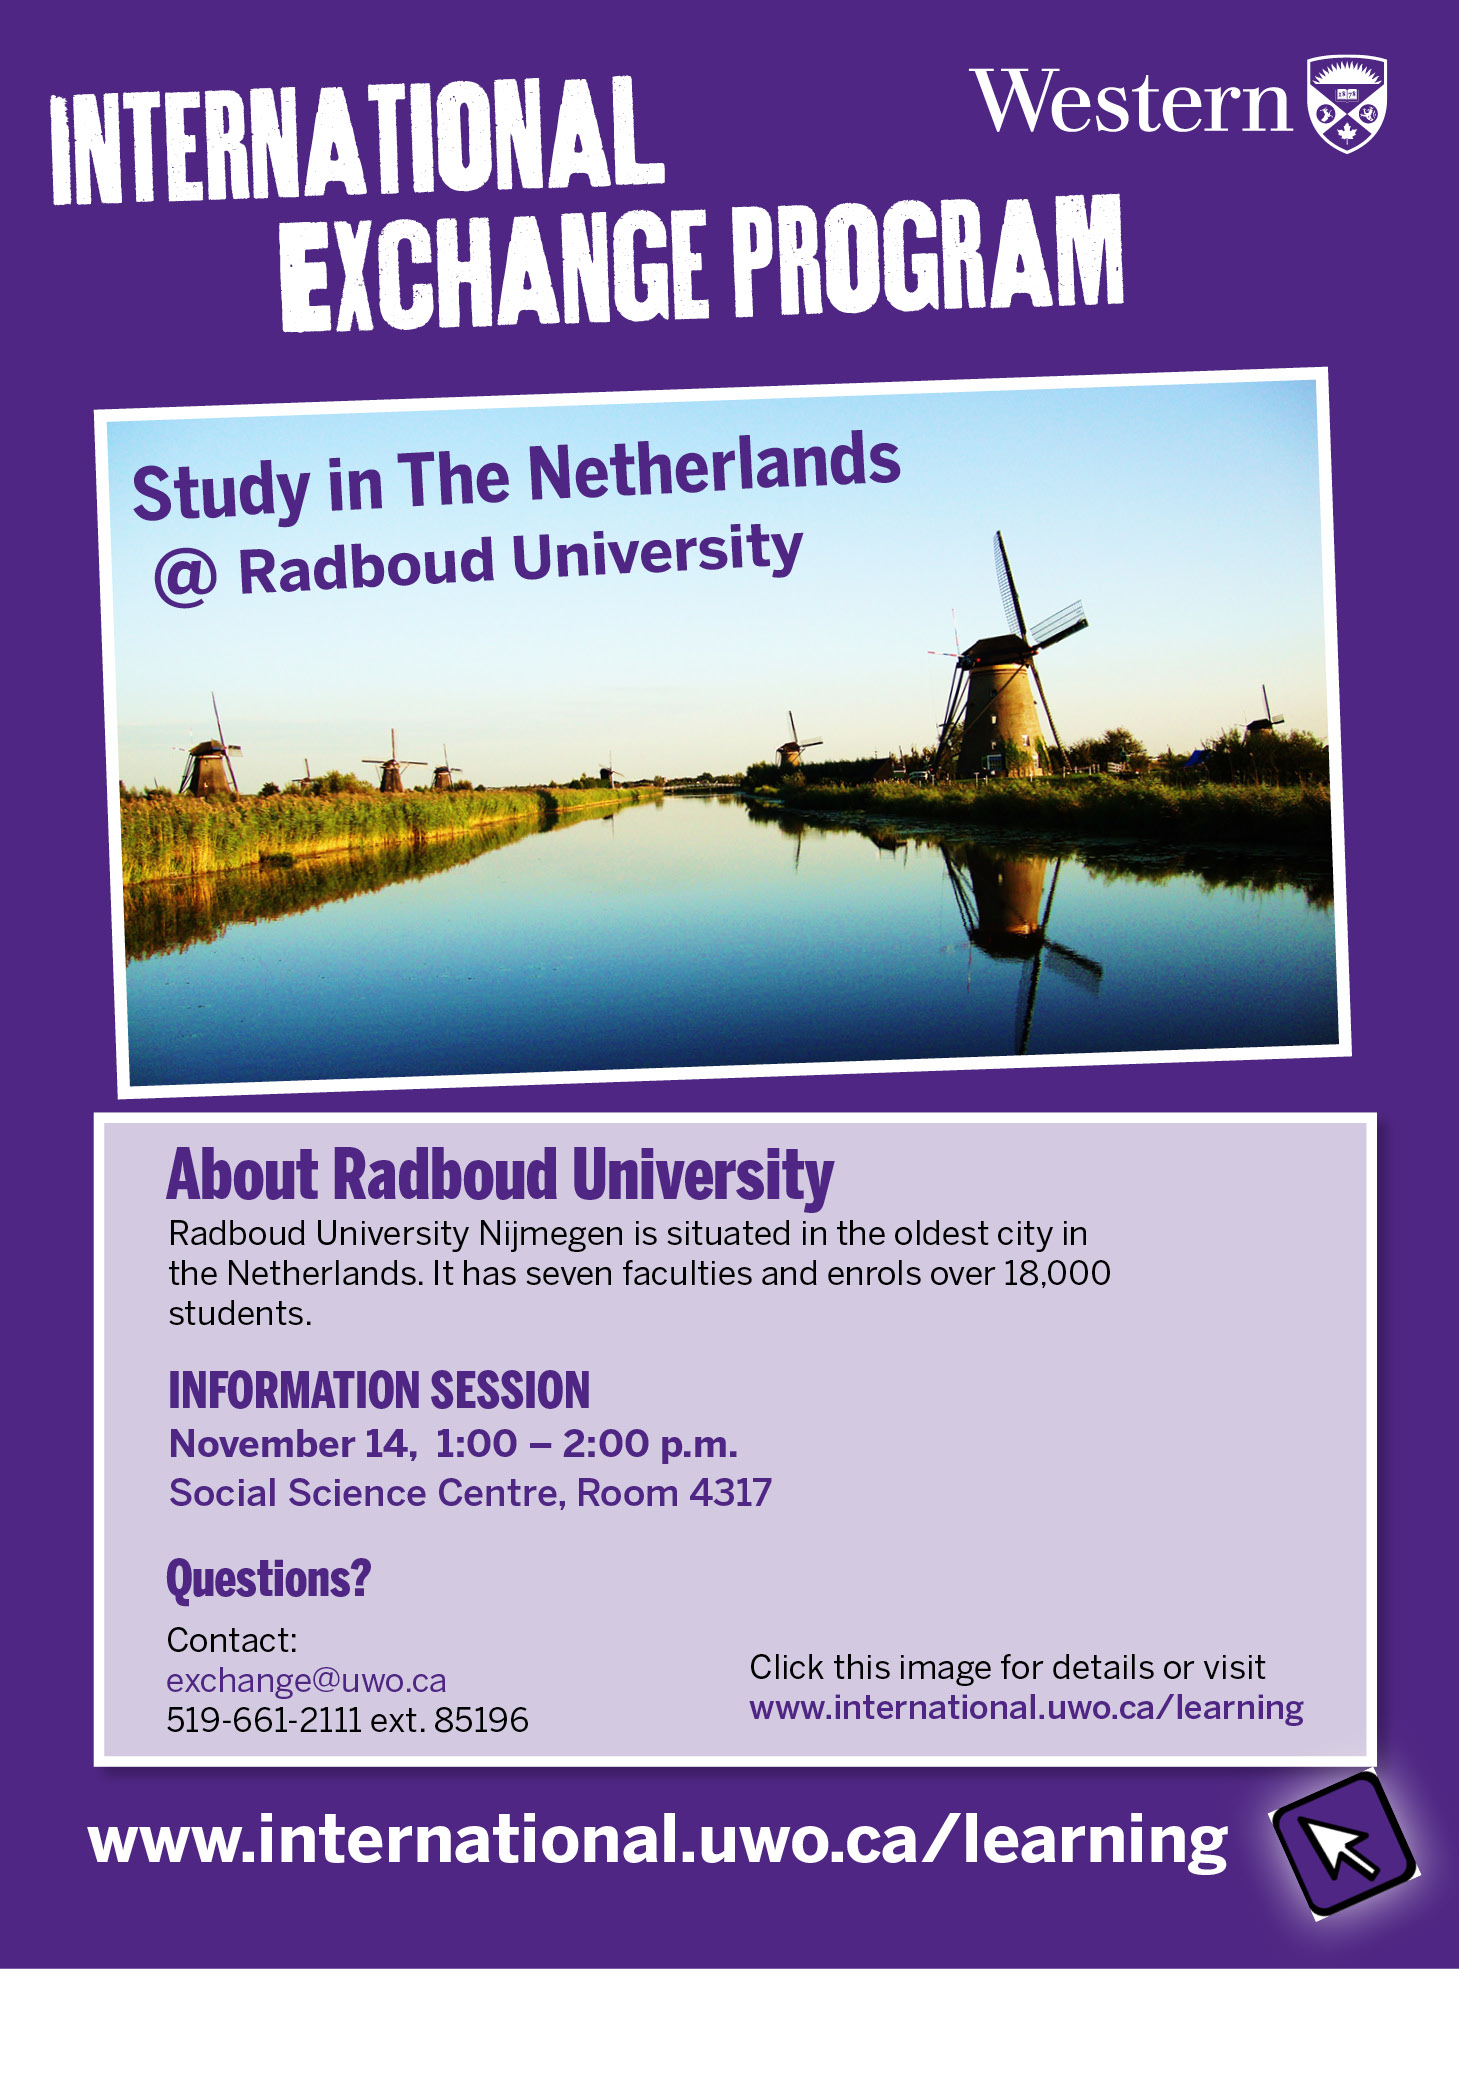 Radboud University Exchange Information Session